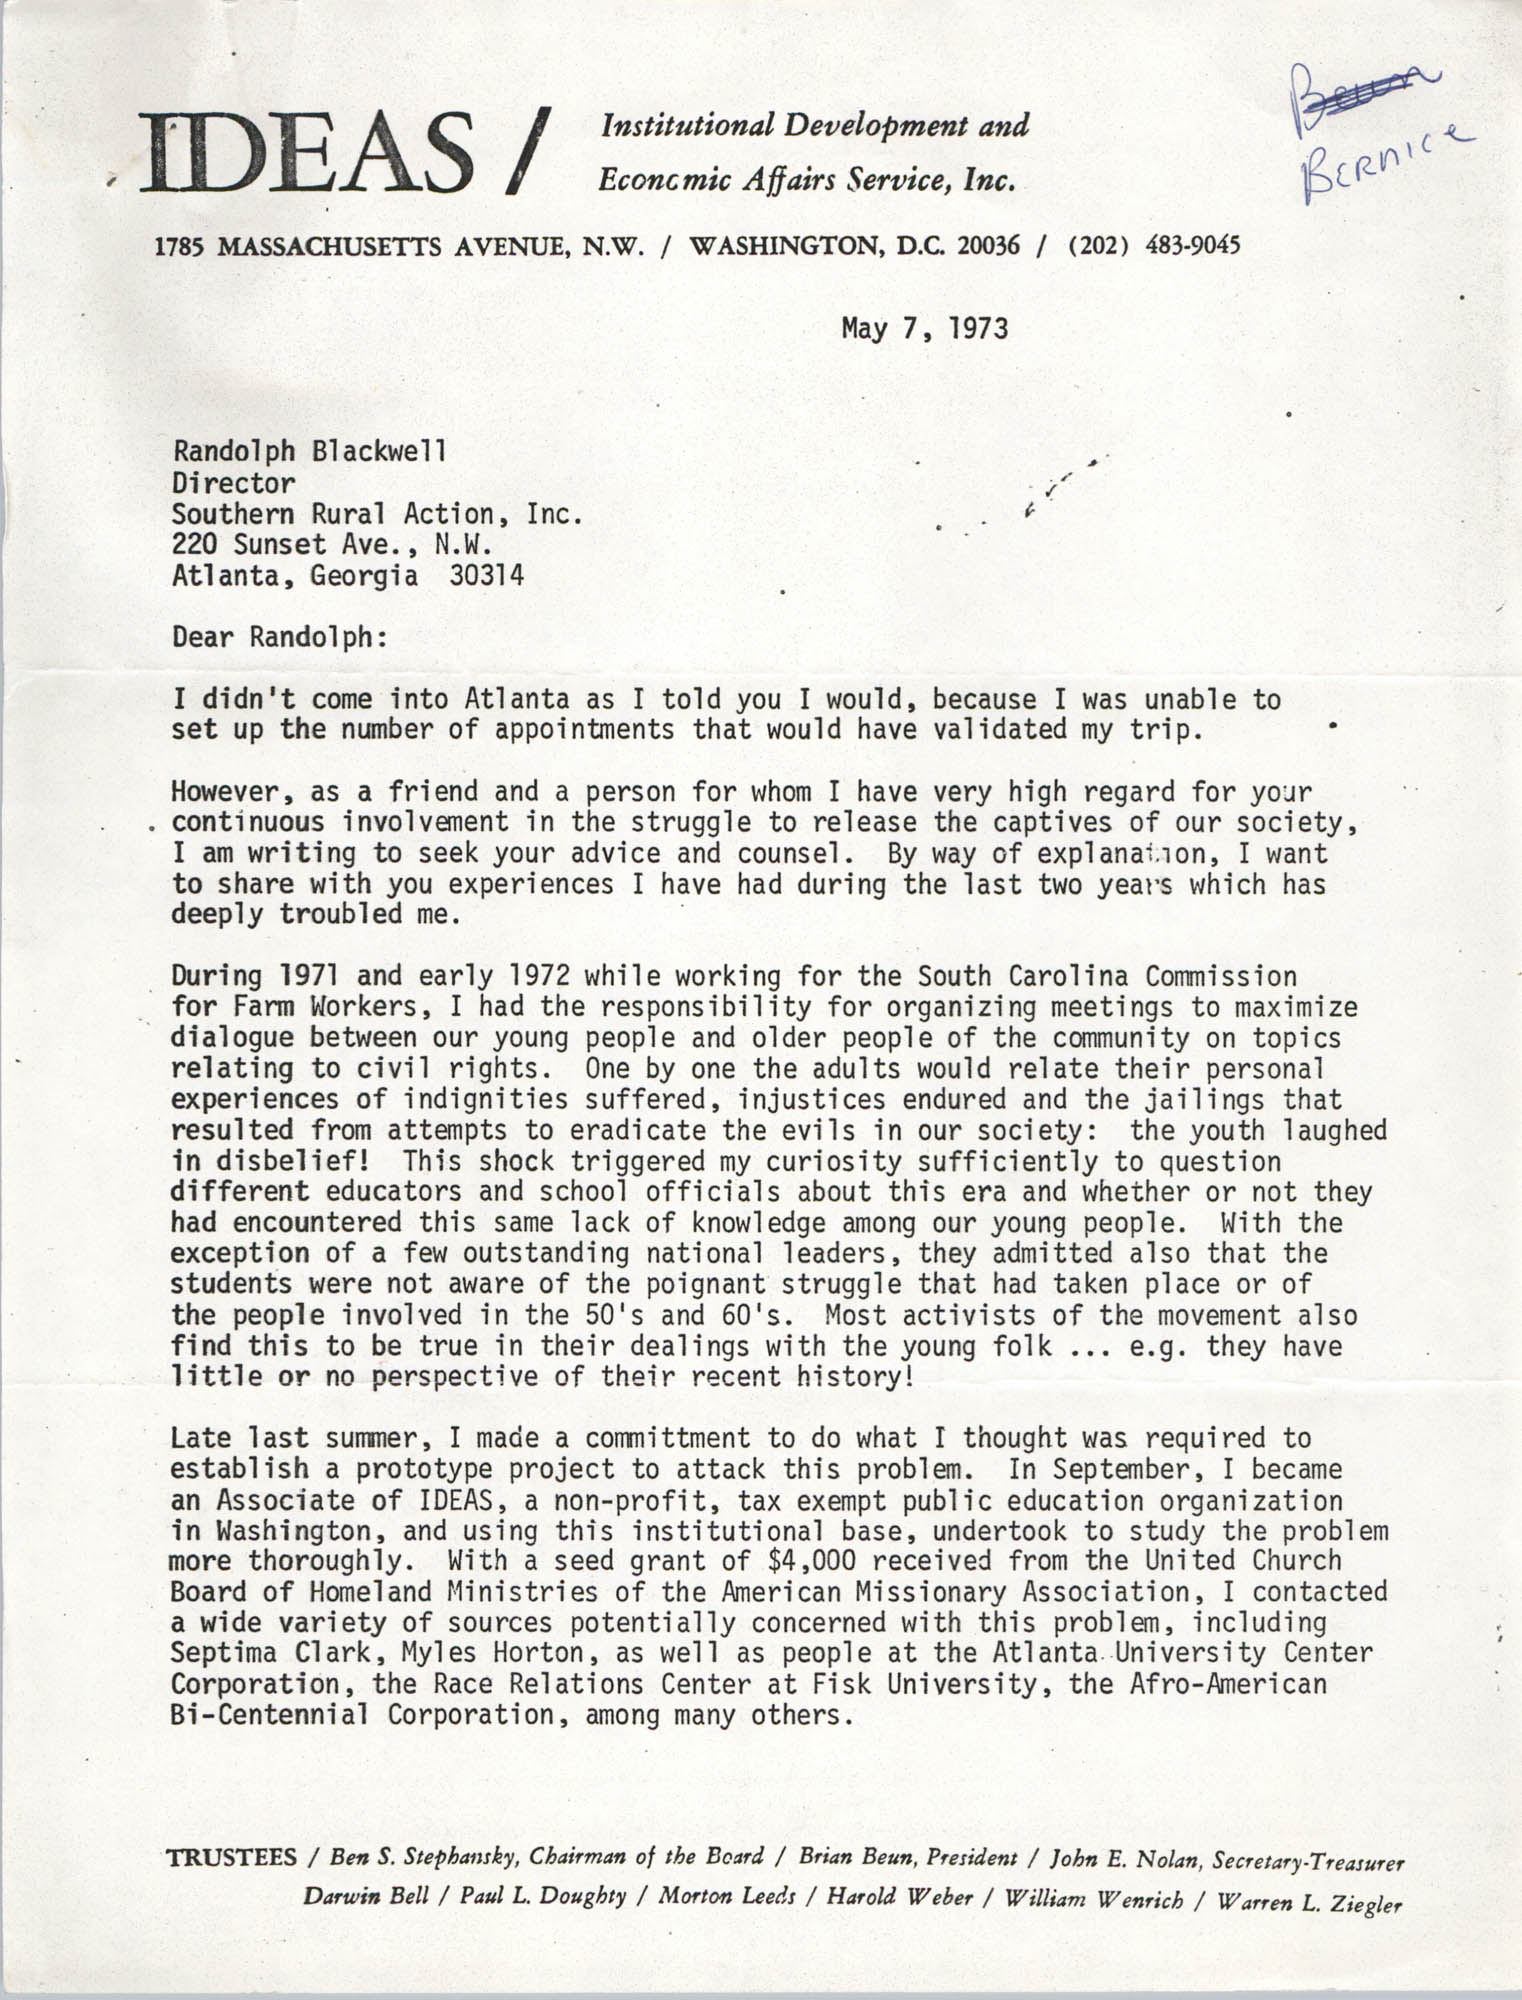 Letter from Bernice Robinson to Randolph Blackwell, May 7, 1973, Page 1